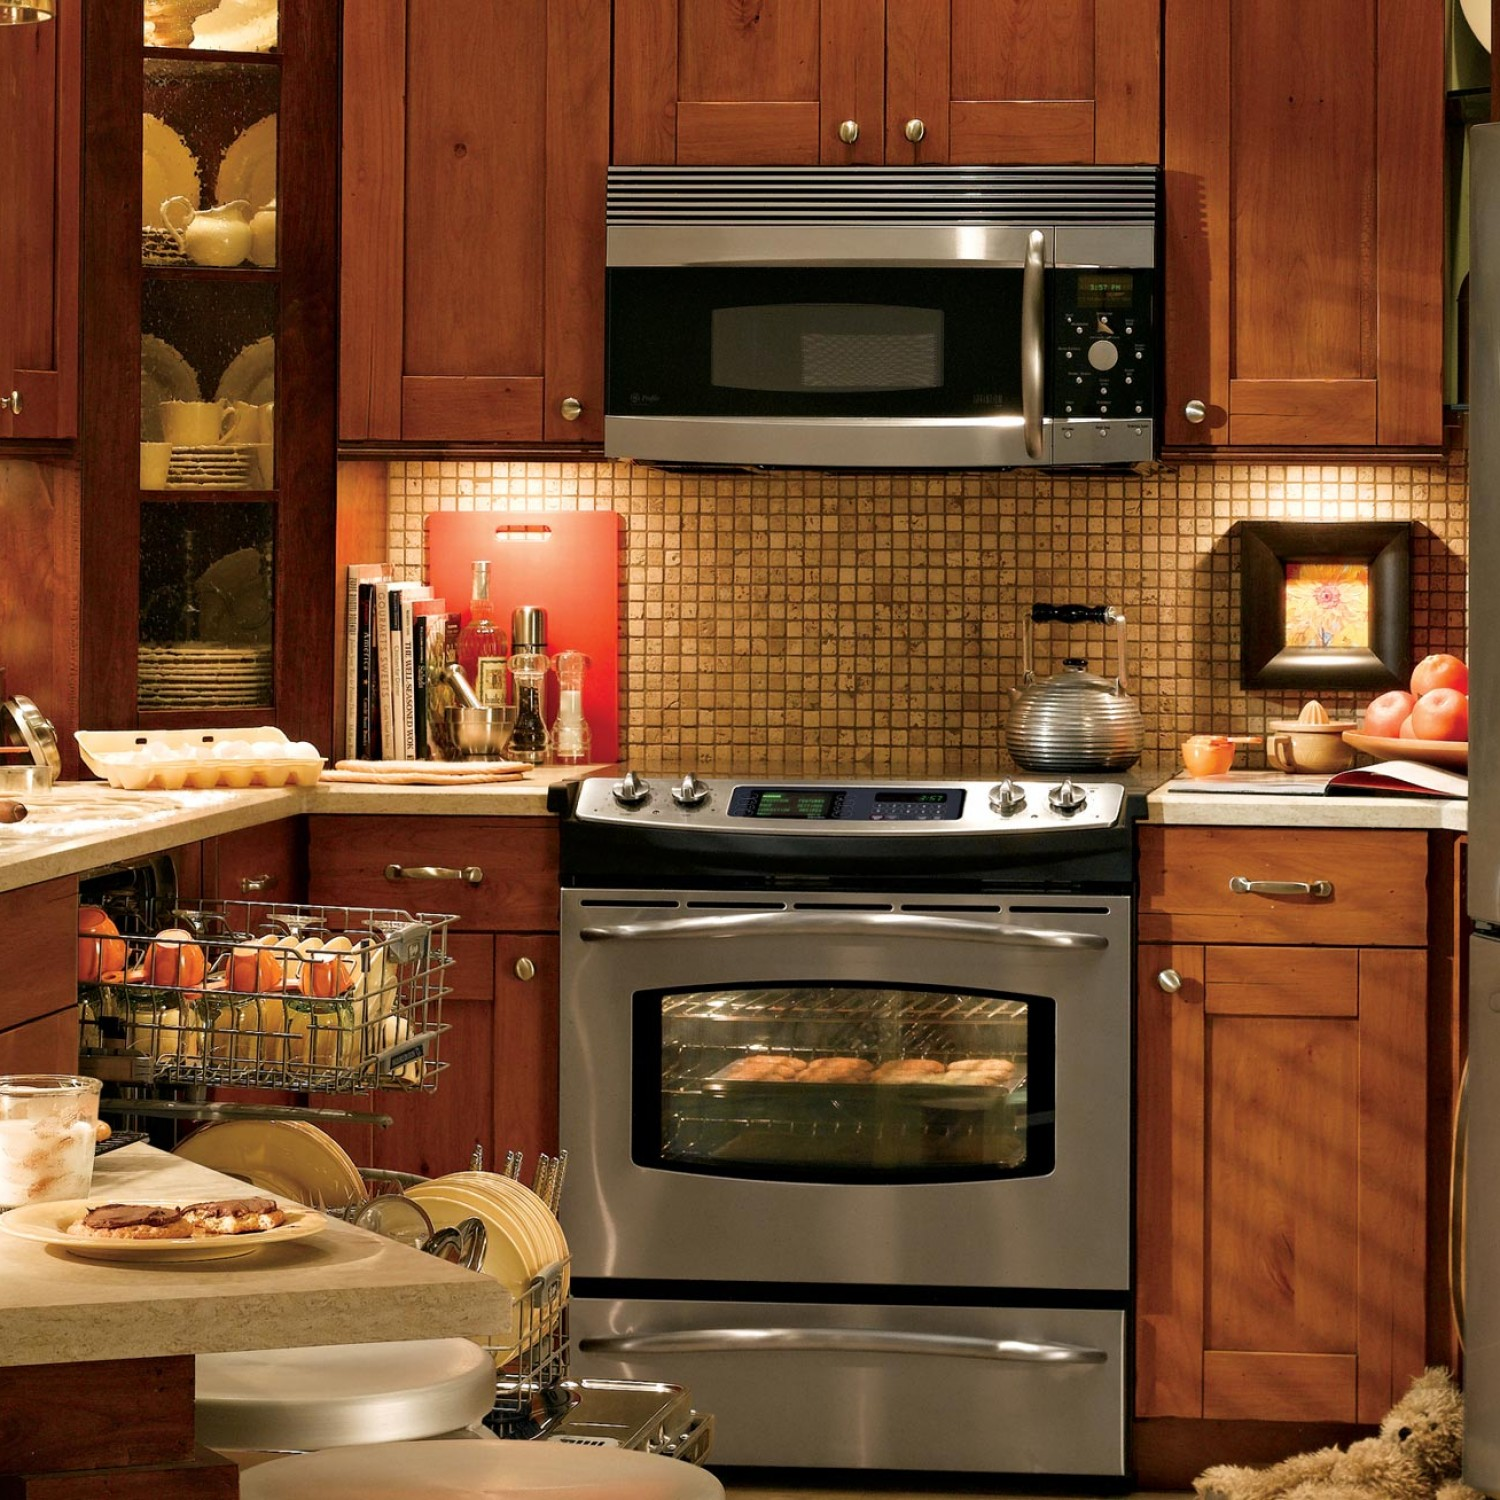 Small Kitchen Remodel Ideas For 2016: Smart & Wise Space Utilization For Very Small Kitchens